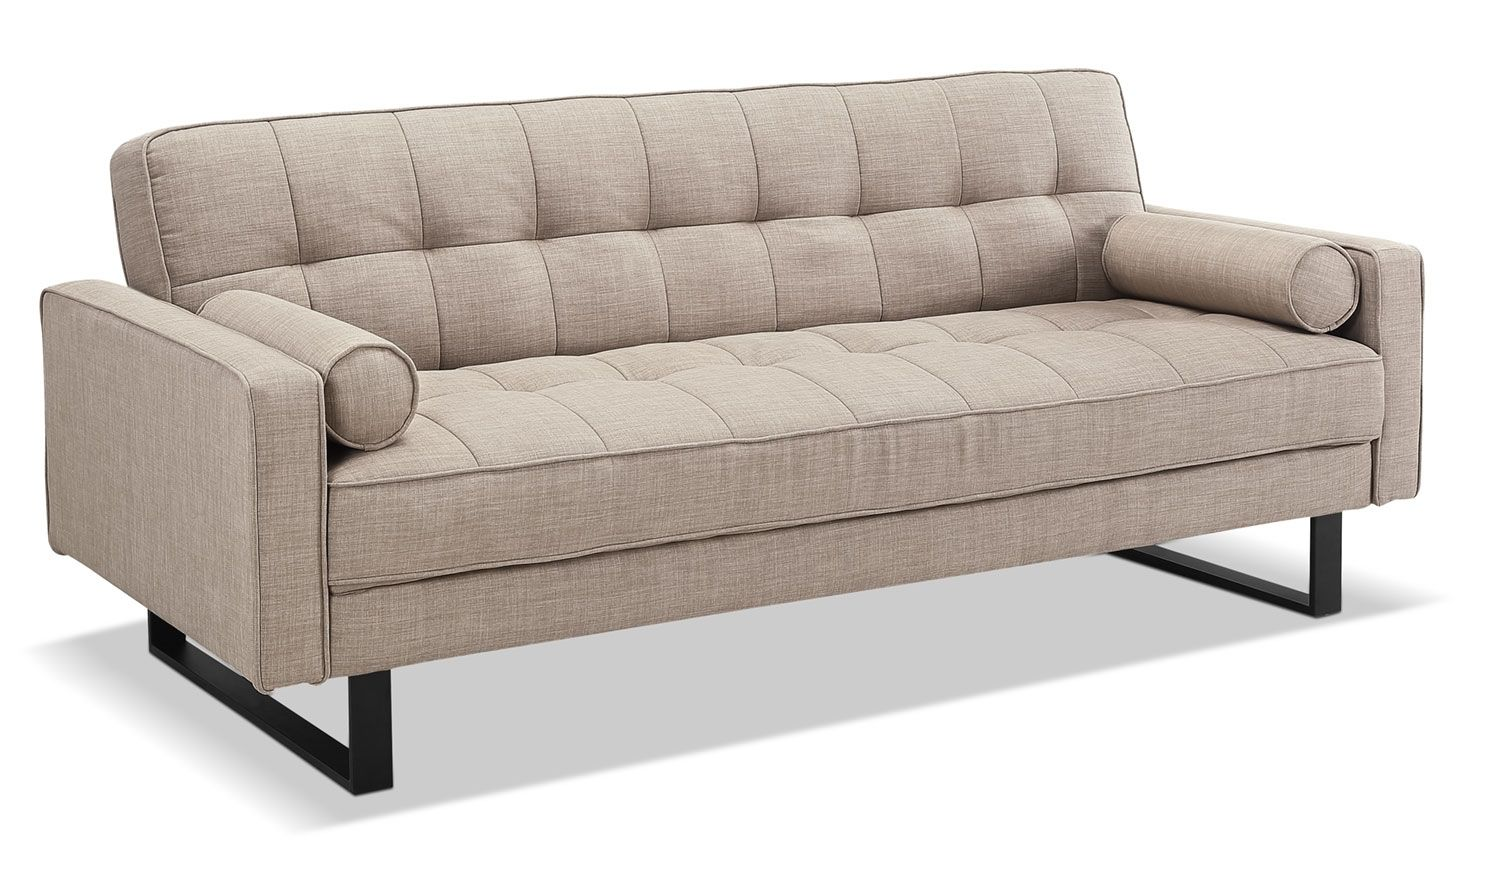 Outstanding Convertible Sofa Different Styles That Will Impress You Dailytribune Chair Design For Home Dailytribuneorg